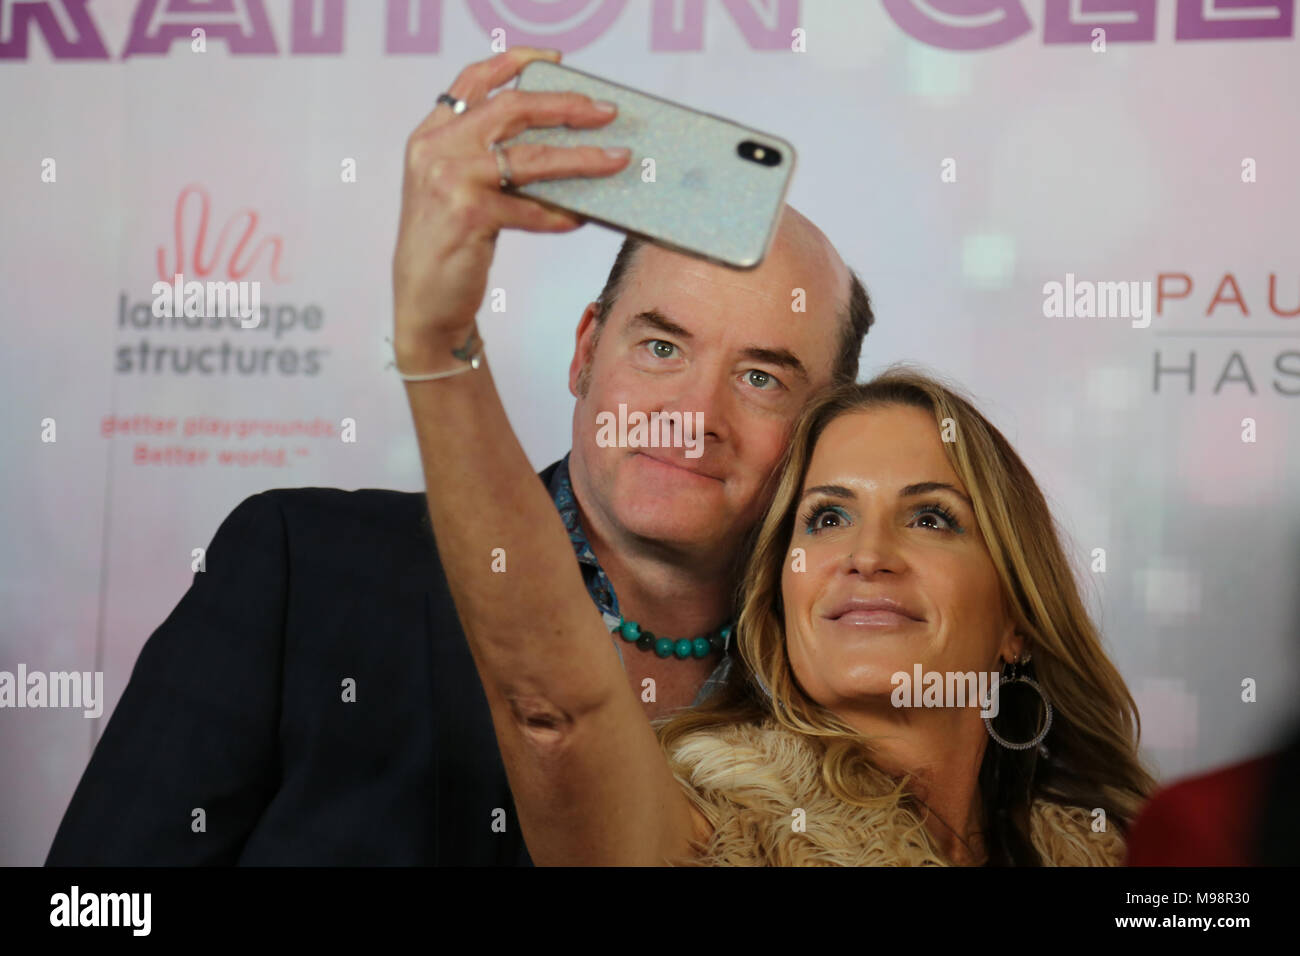 """Los Angeles, CA / USA - March 10, 2018: Actors David and Leigh Koechner pose for a photo at the Shane's Inspiration """"Boogie Wonderland"""" themed gala. Stock Photo"""